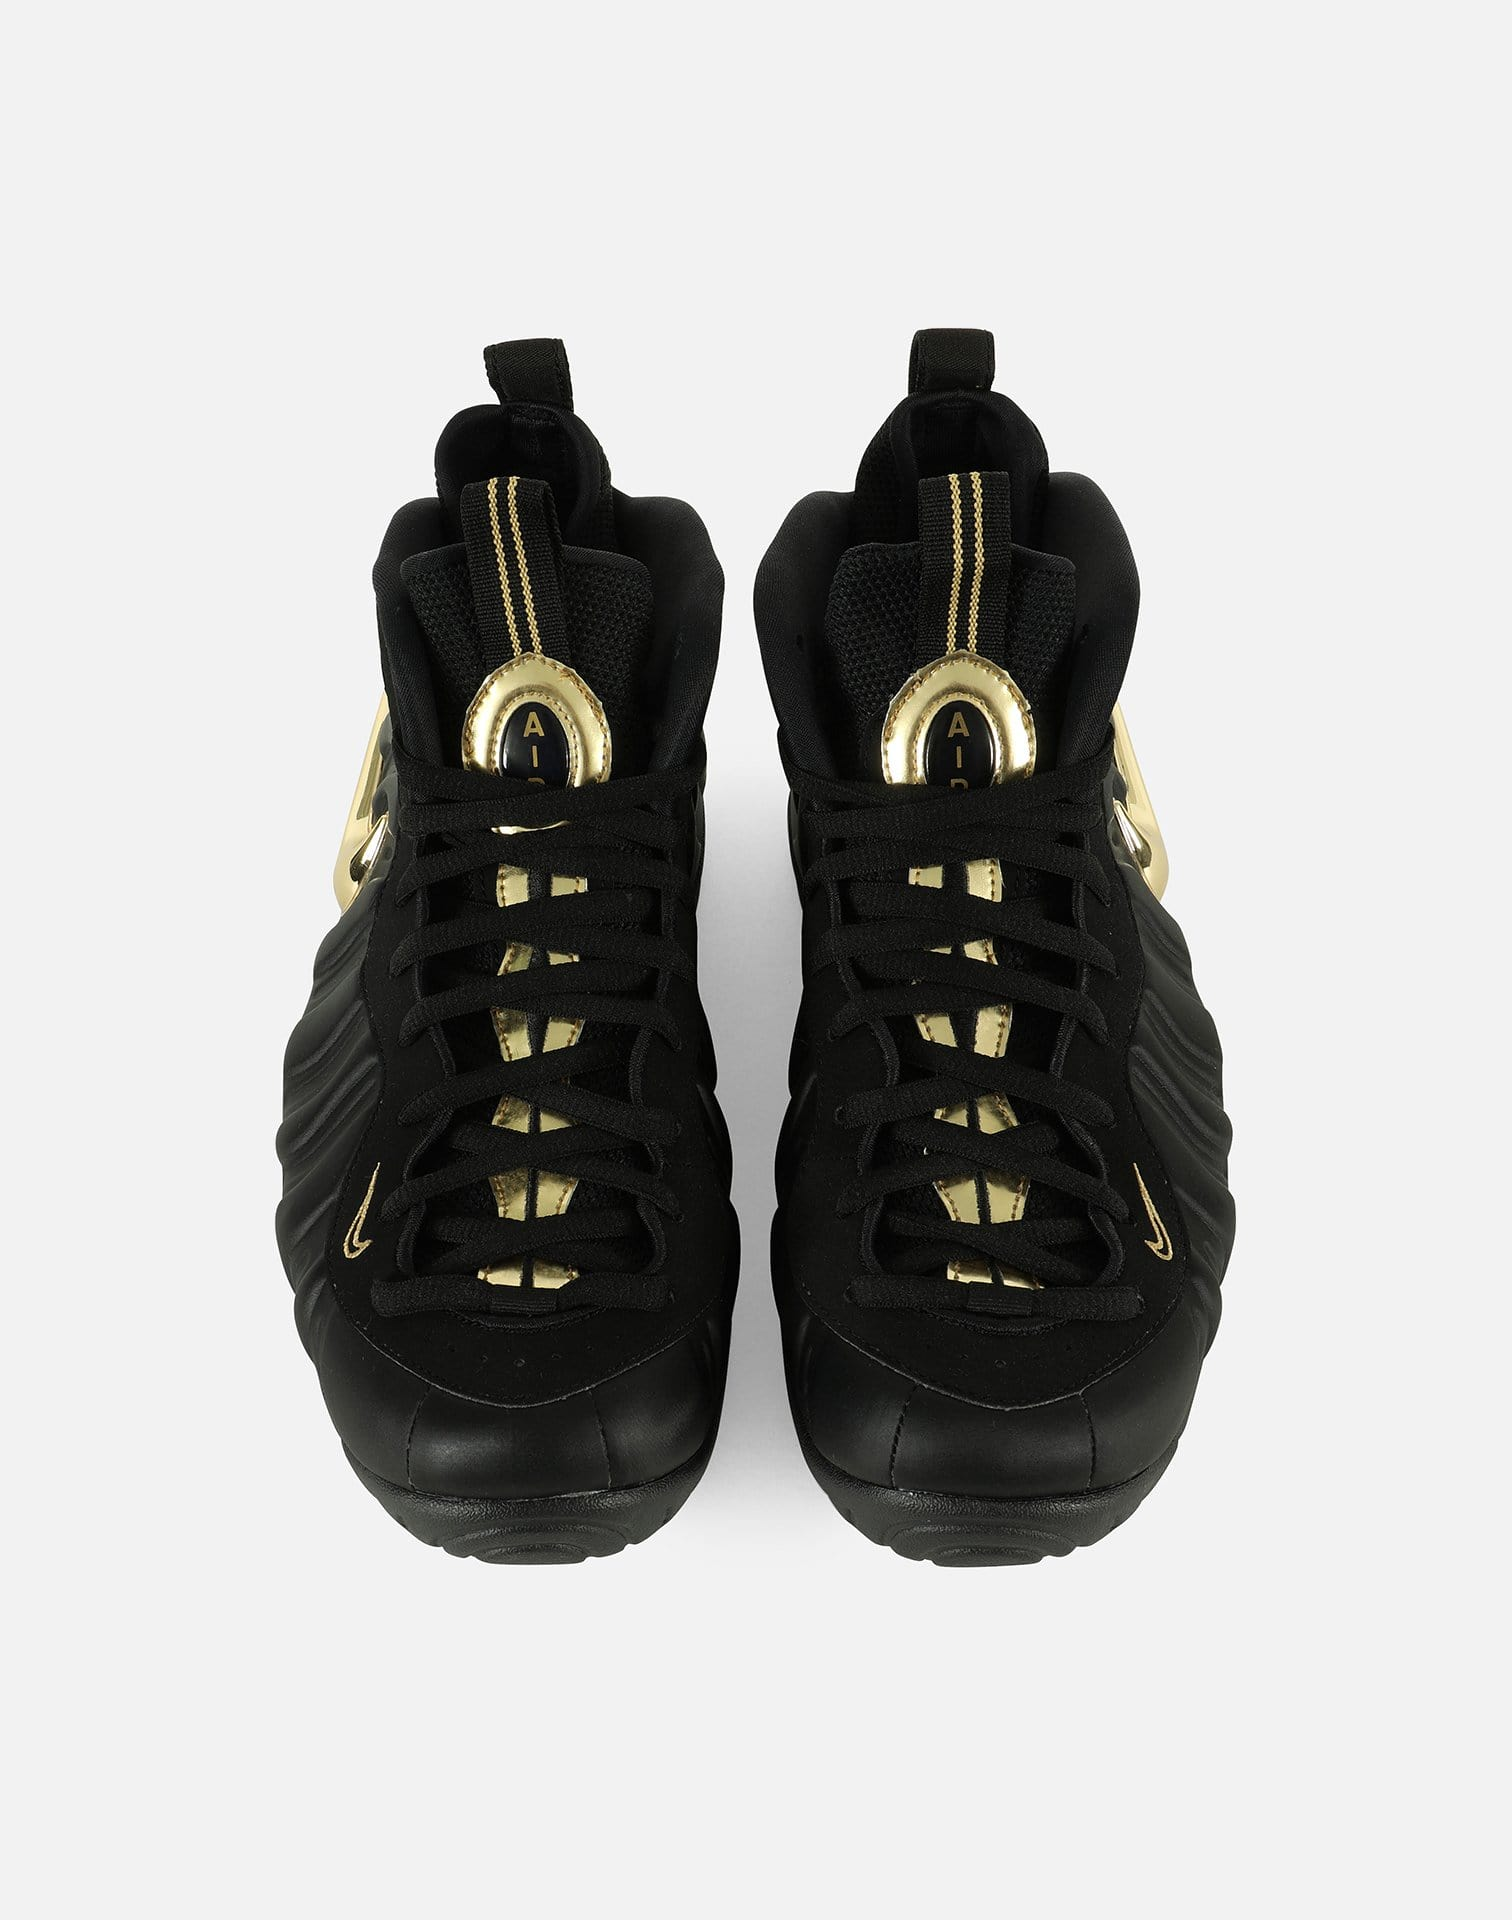 Nike Men's Air Foamposite Pro